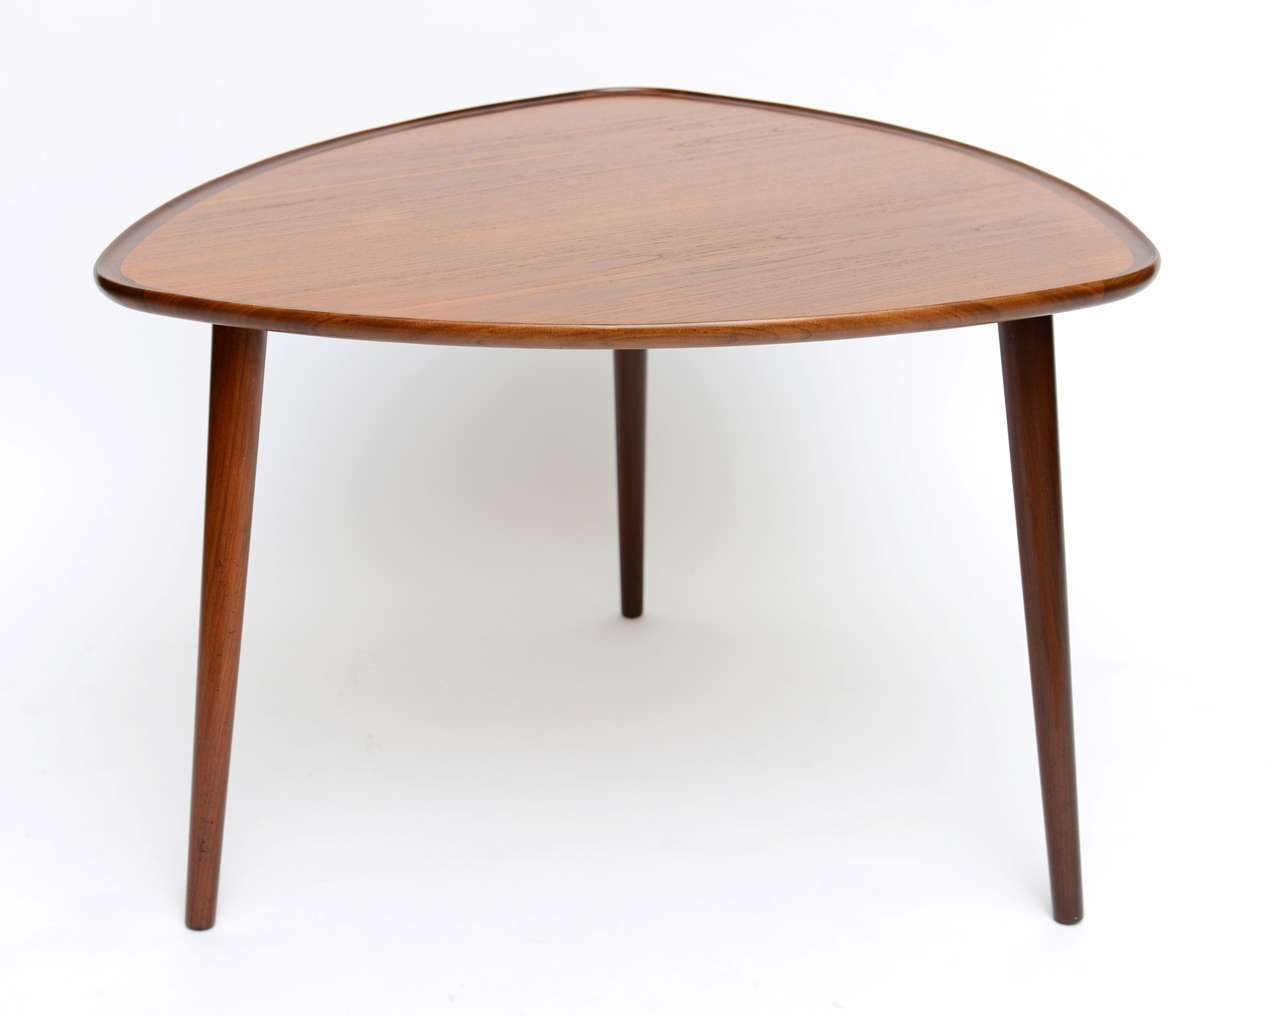 exceptional danish teak and rosewood triangular table at stdibs - exceptional danish teak  rosewood triangular table